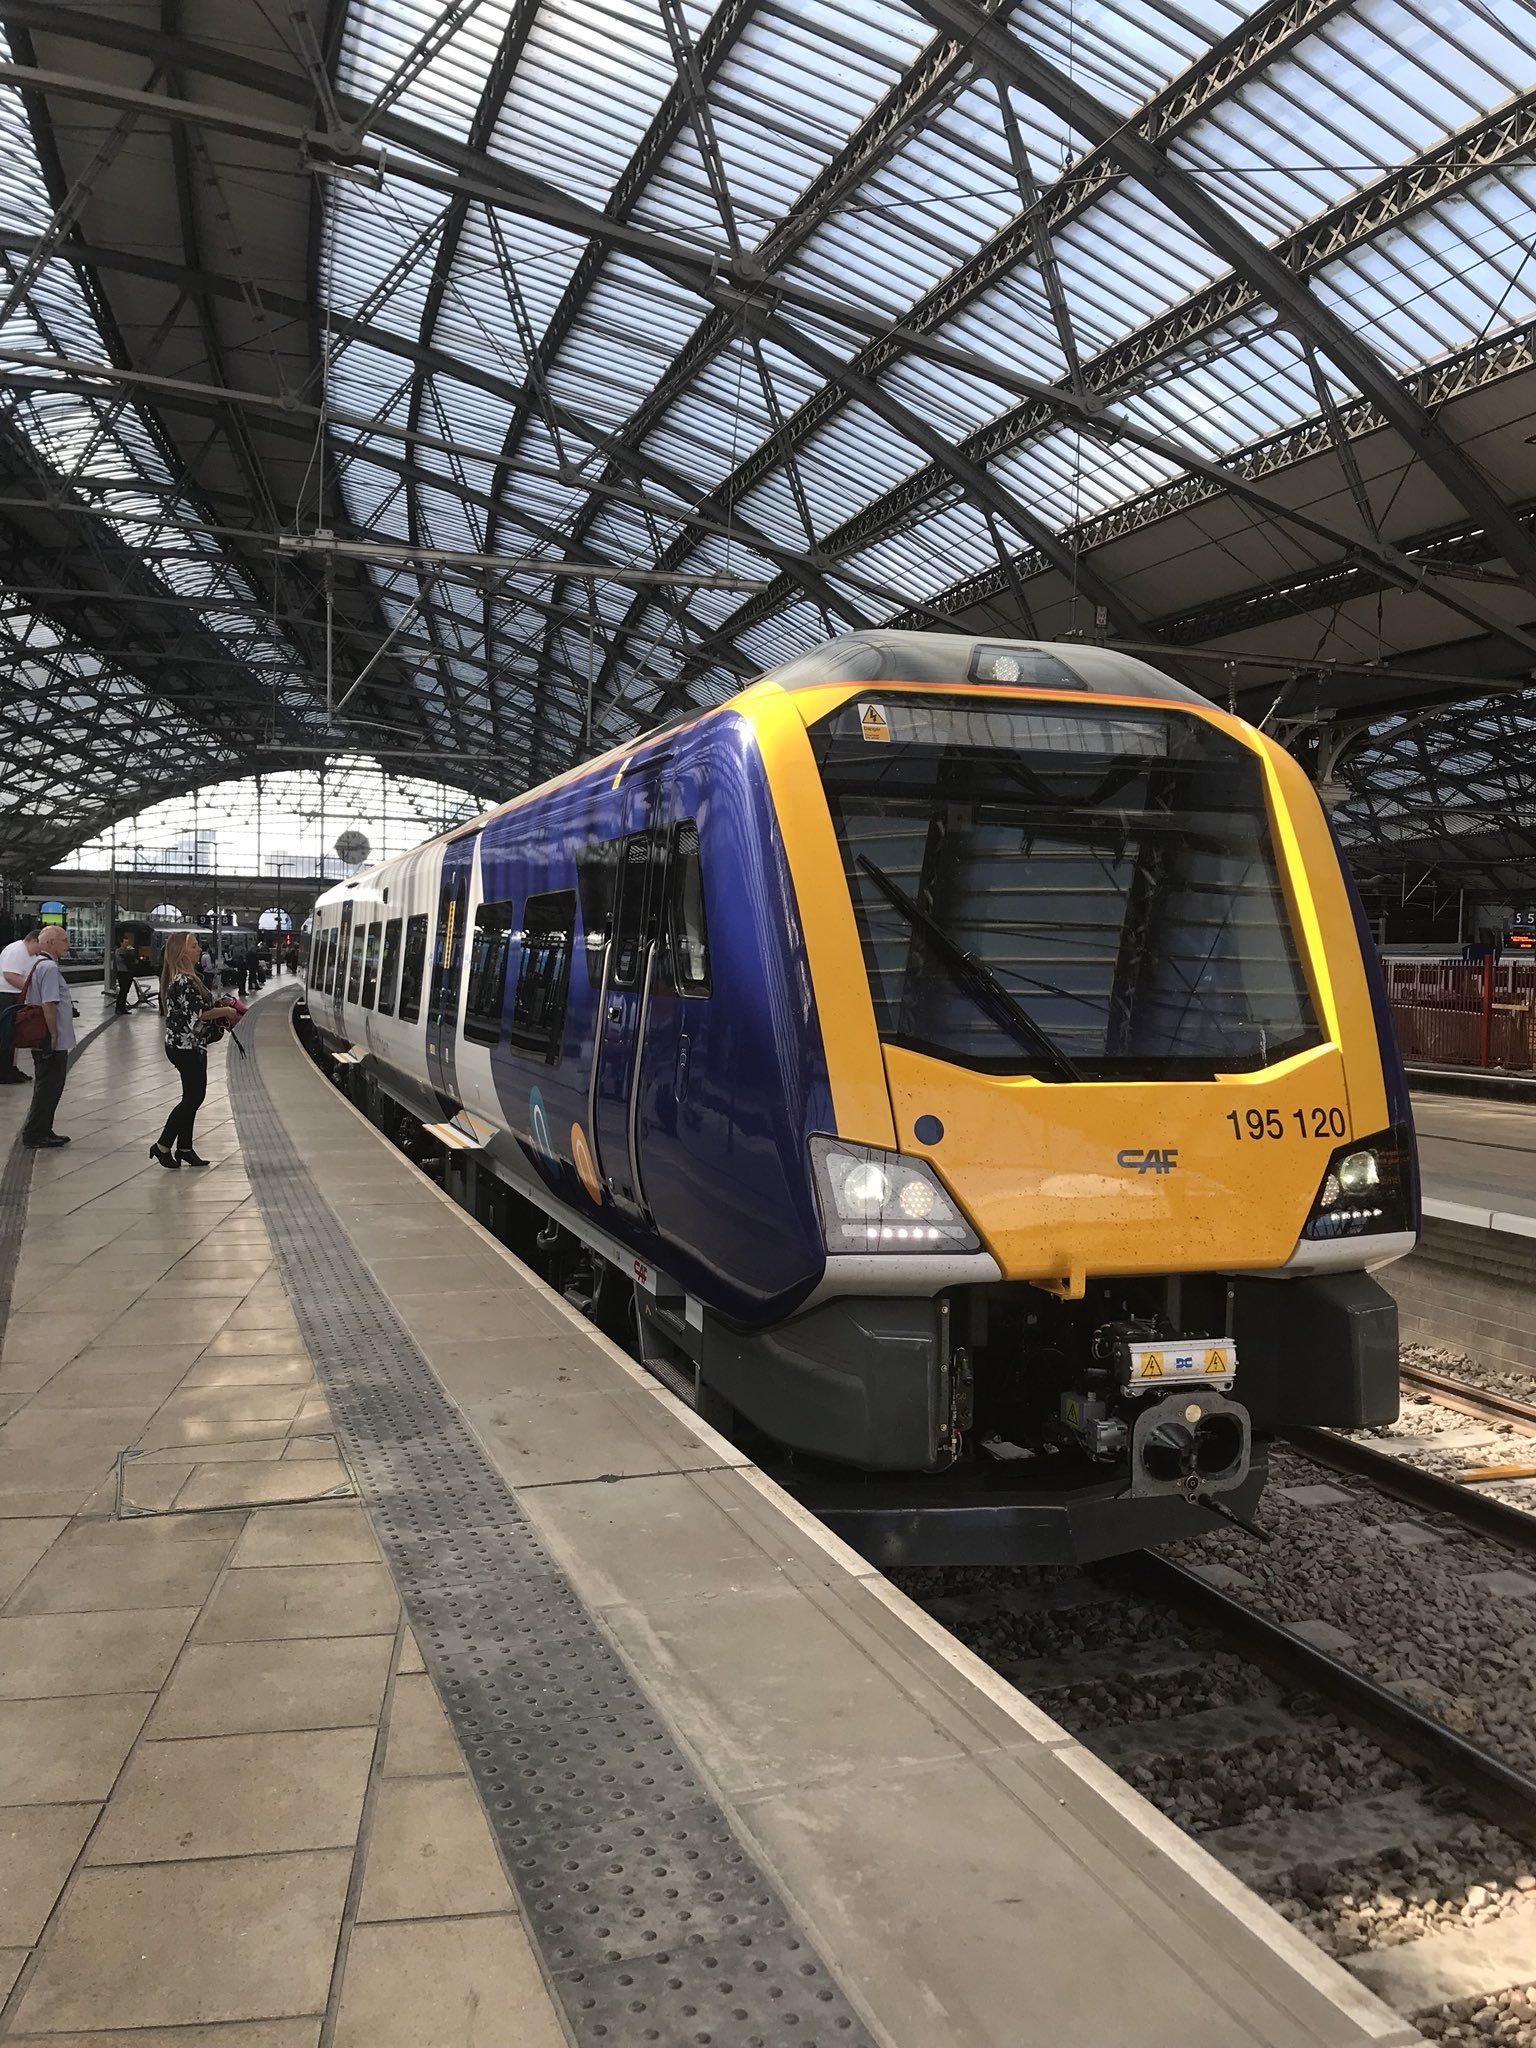 cbab7d8f68c868db7a84377f80b6d704 - How To Get From Manchester Train Station To Airport